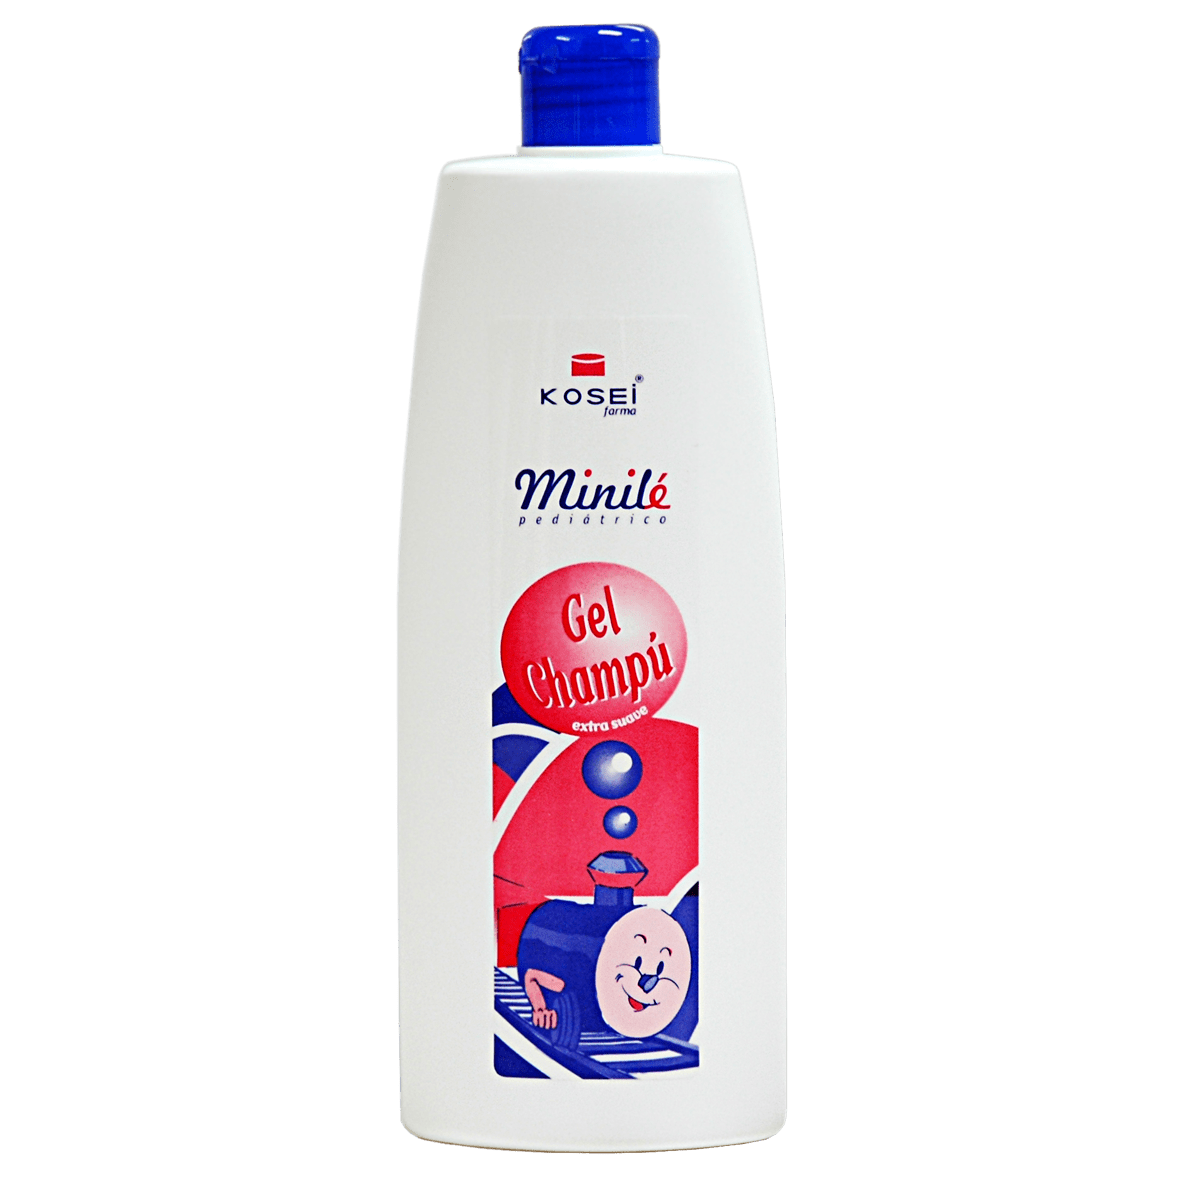 MINILÉ gel-champú 200 ml